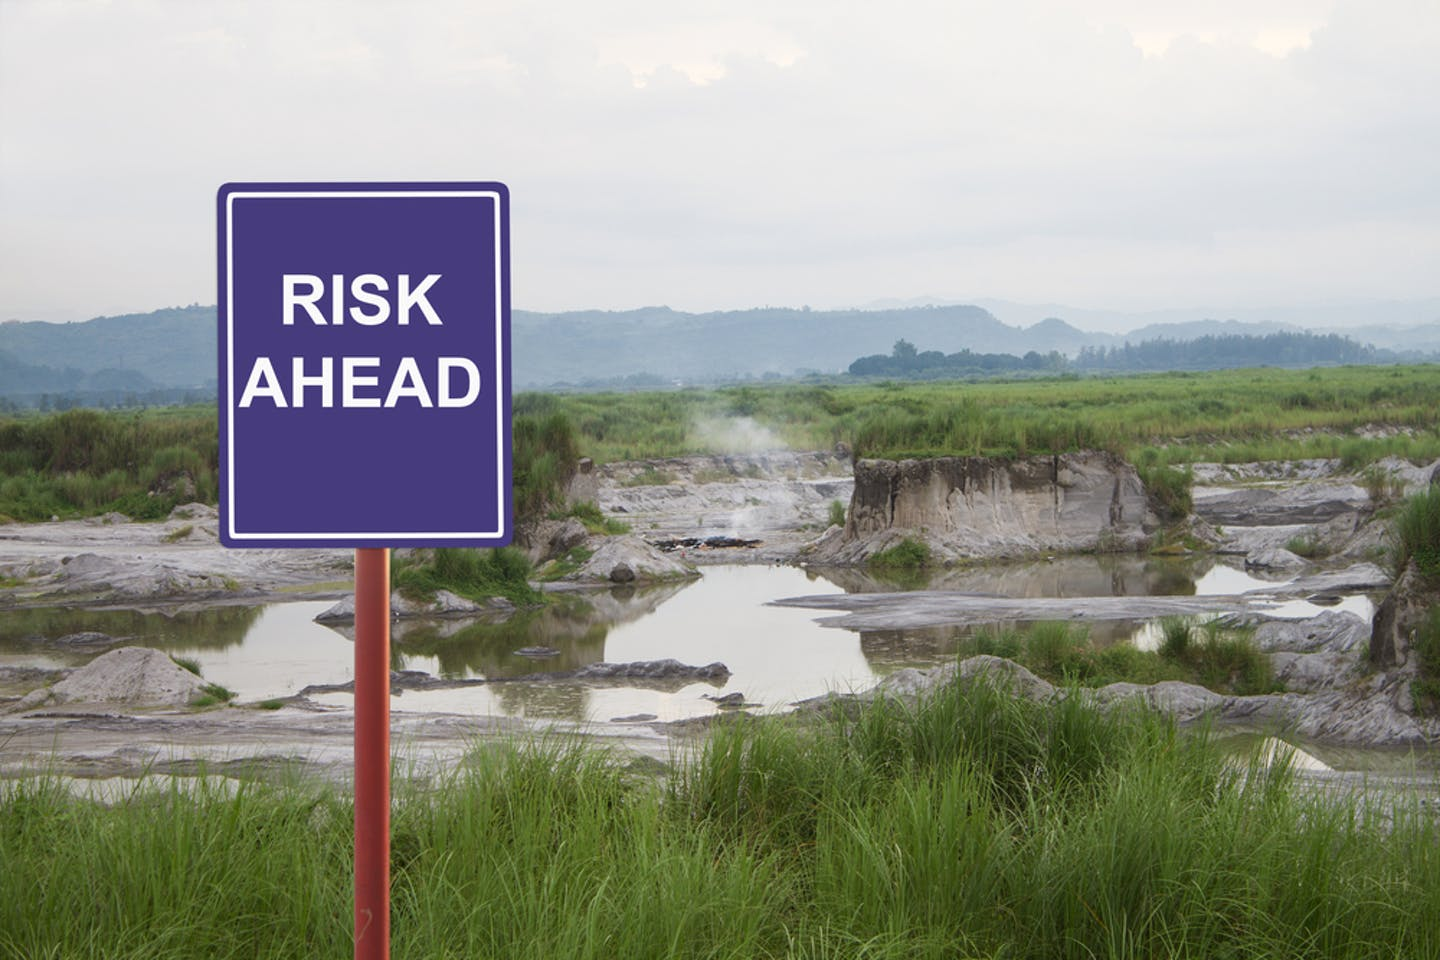 pinatubo risk ahead